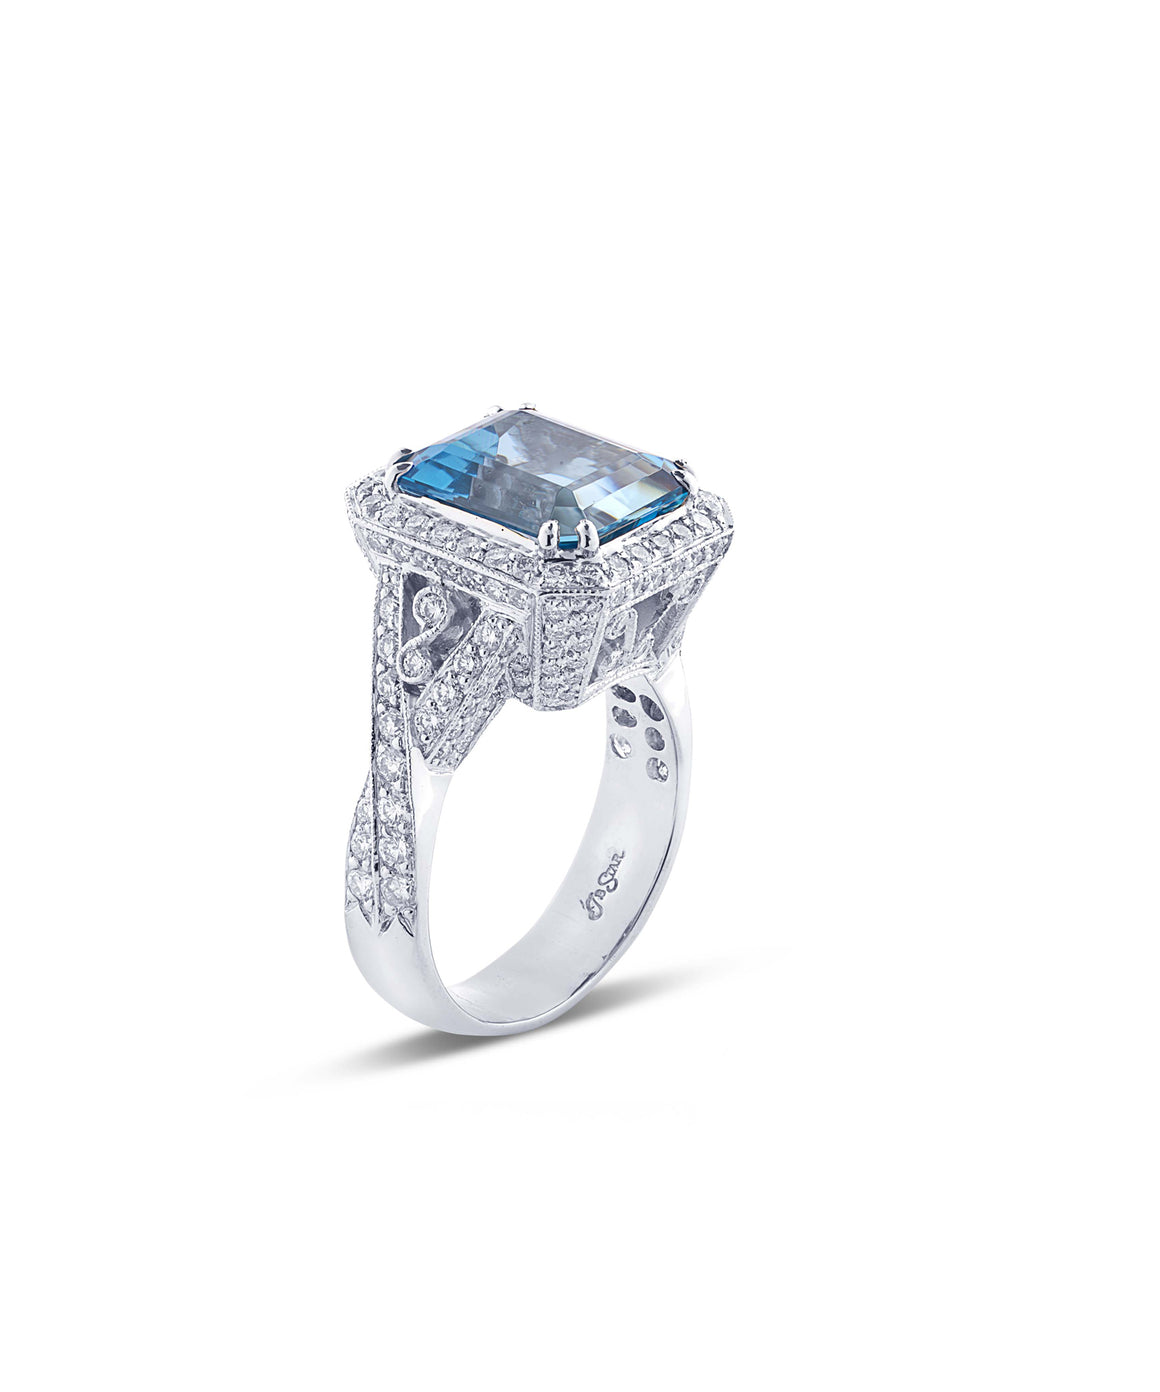 Emerald cut aquamarine ring - Lesley Ann Jewels